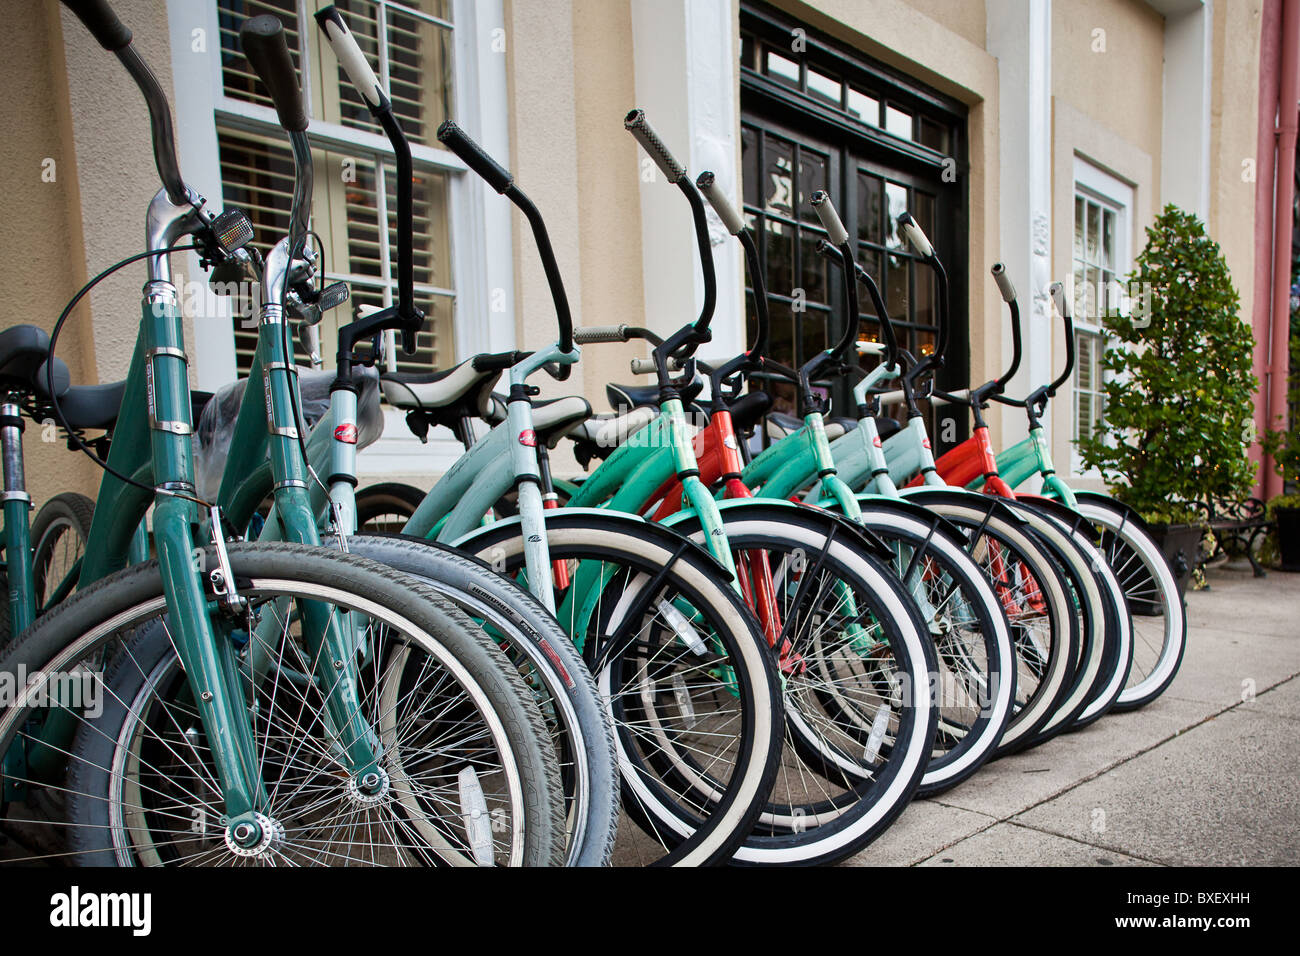 View of the bicycles in front of the Vendue Hotel and Vendue Range in Charleston, SC. - Stock Image